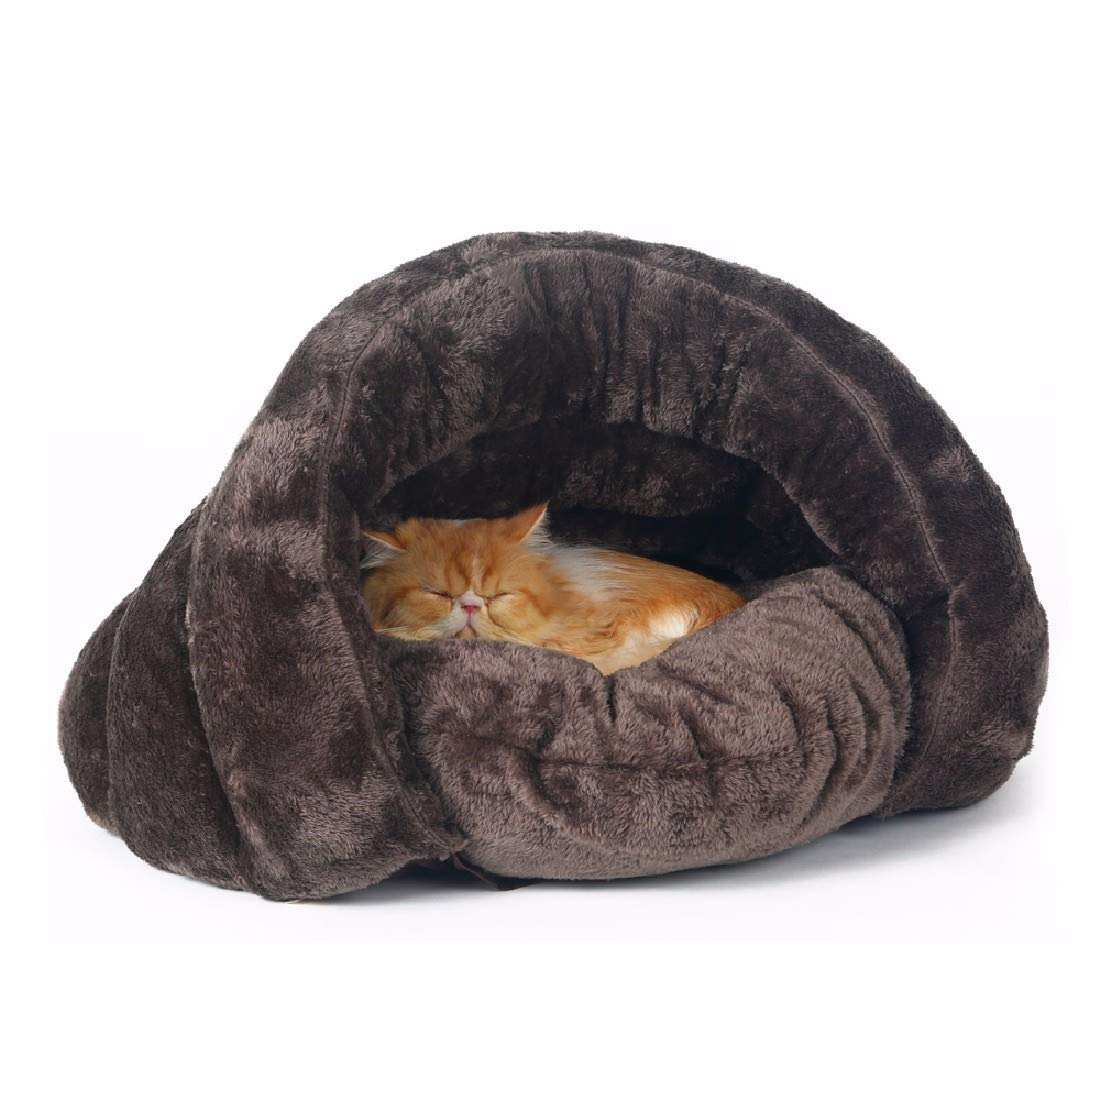 Brown 50x50x36cm brown 50x50x36cm Pet Dog Cat House Bed Cats Winter Warm Cats Sleeping Bags pet Kennel mats Winter Dogs Four Seasons,Brown,50x50x36cm